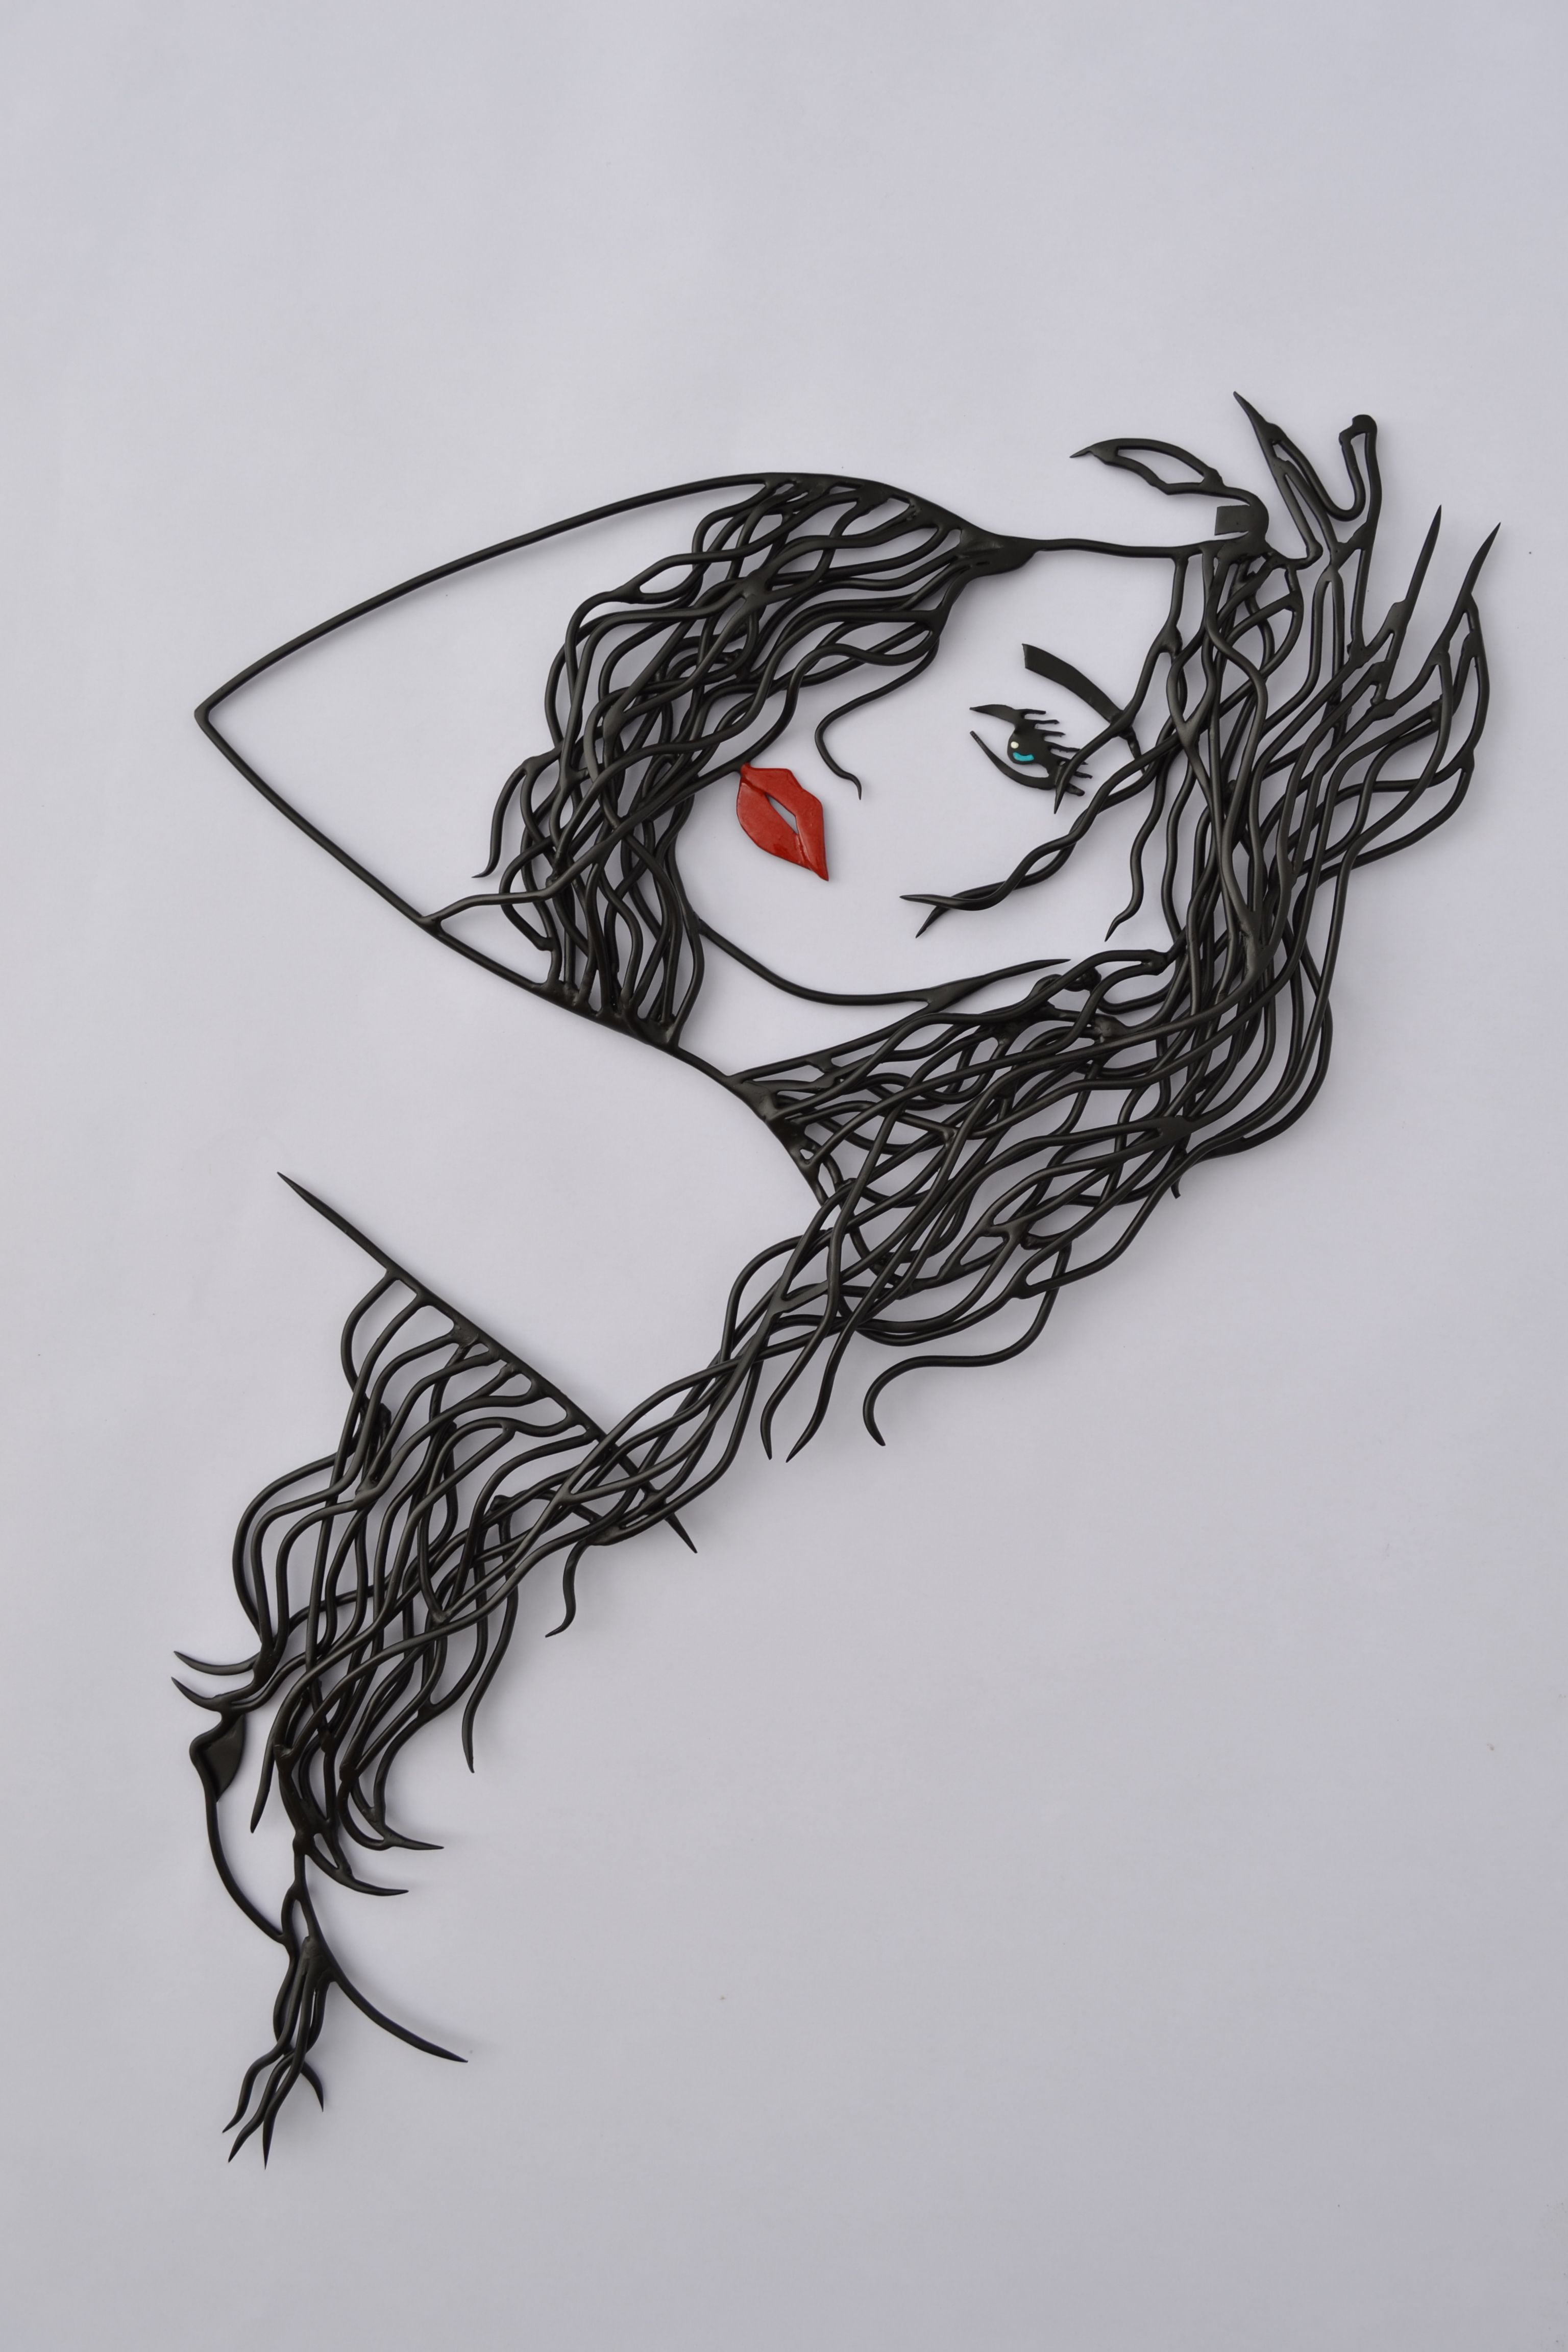 wire hair | 3D paintings | Pinterest | Wire art, 3d pen and Quilling